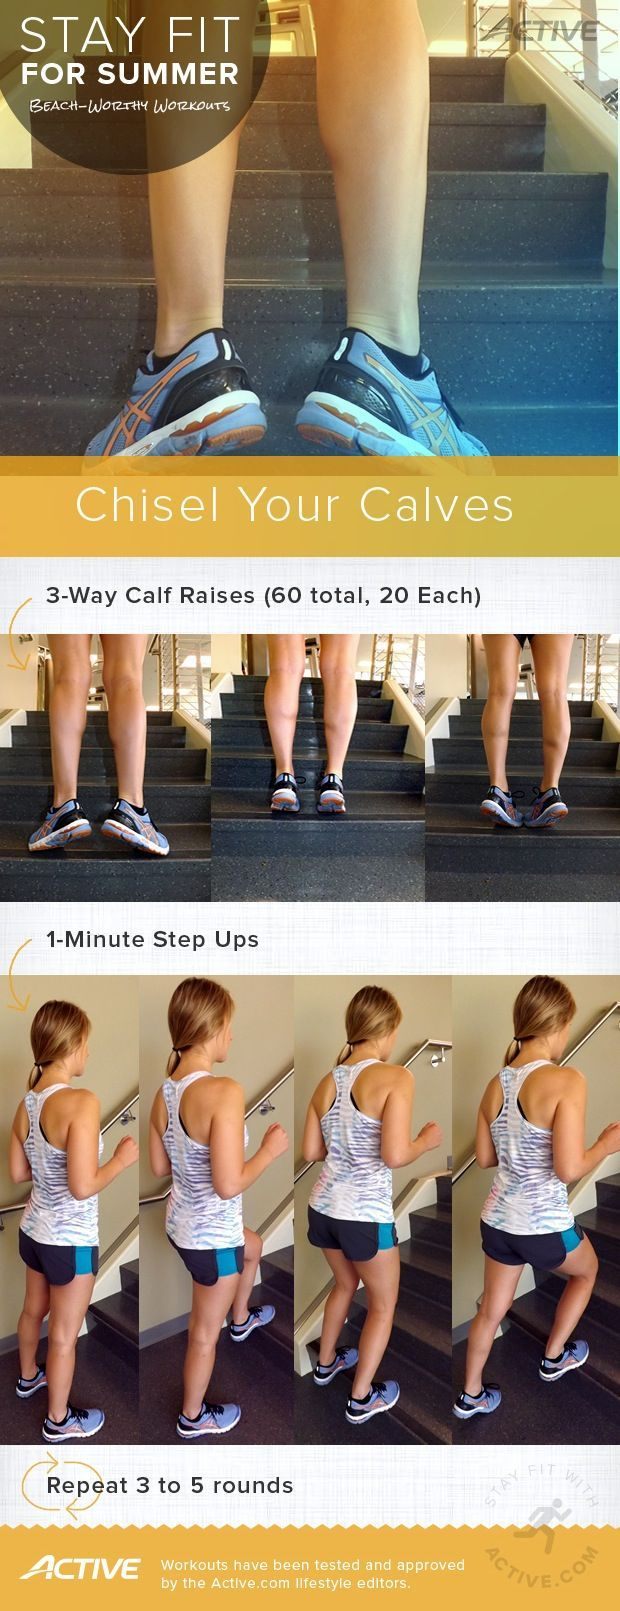 Stay Fit for Summer: Chisel Your Calves